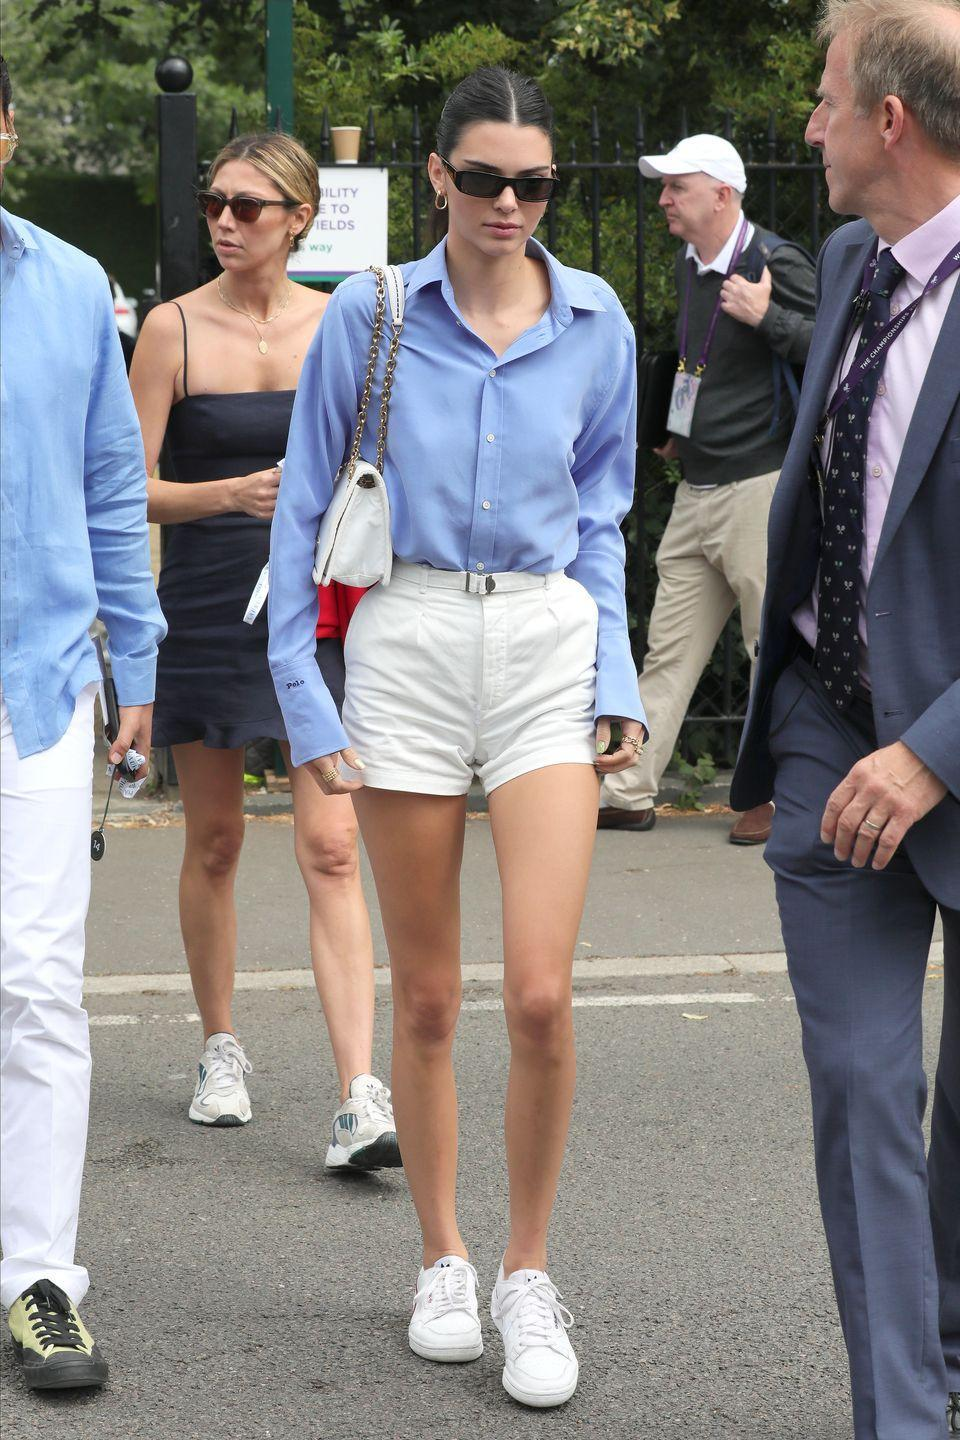 <p><strong>2019 </strong>Kendall Jenner teamed a pair of high-waisted shorts with a blue shirt and trainers - both by Polo Ralph Lauren - to watch the 2019 Wimbledon final.</p>